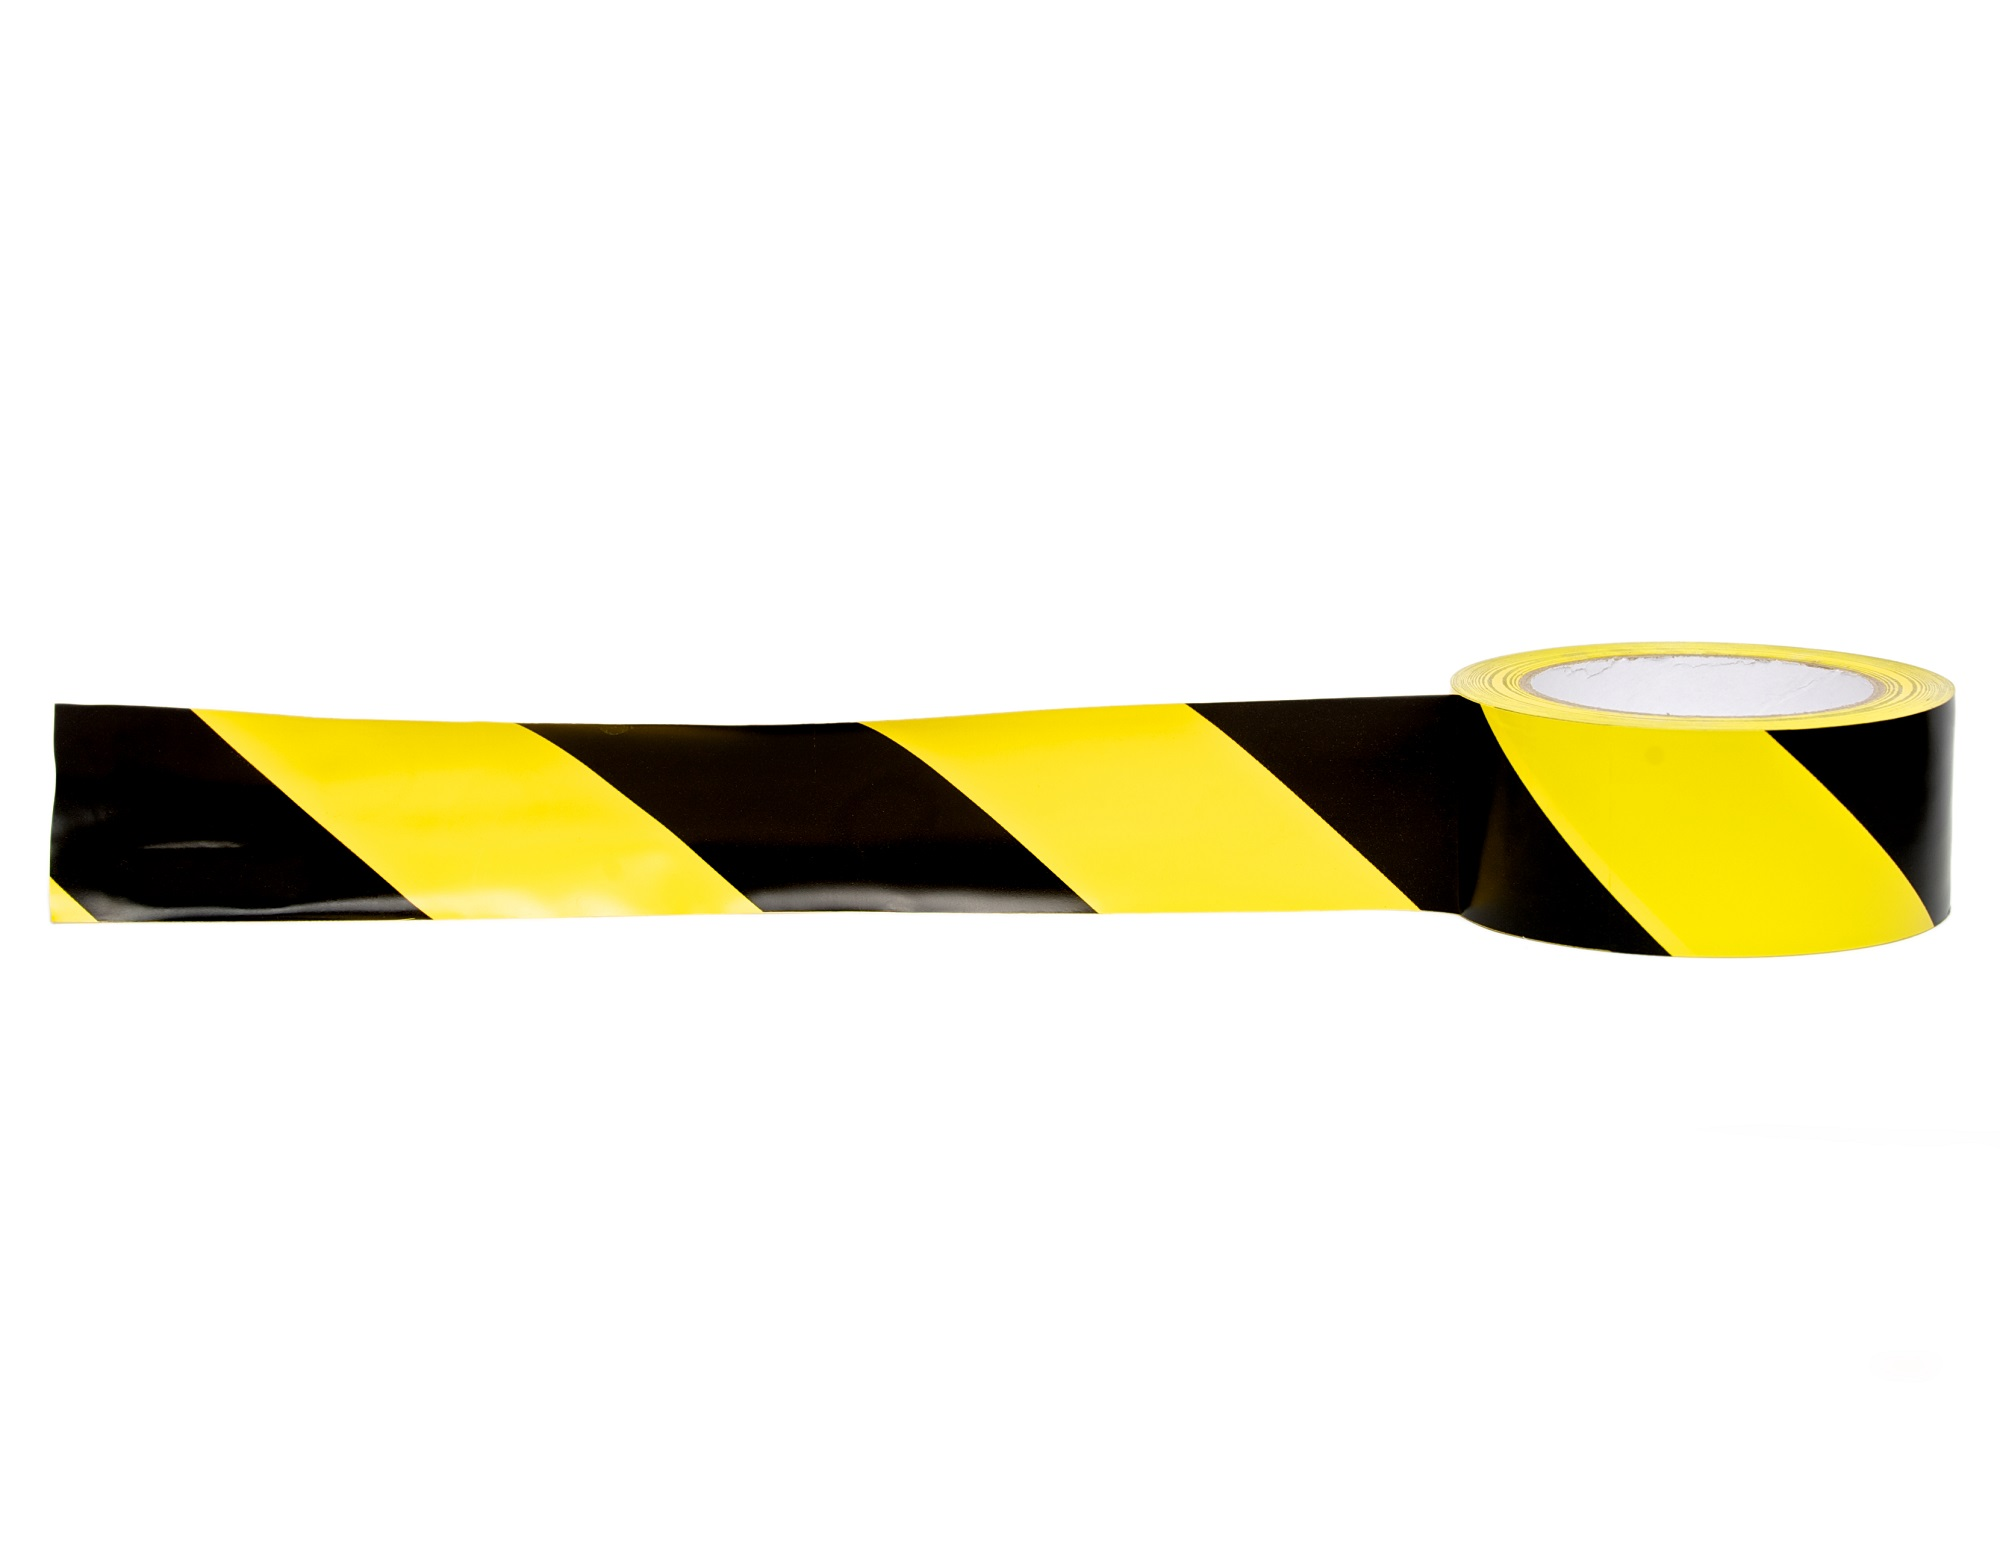 Striped Hazard Marking Tape